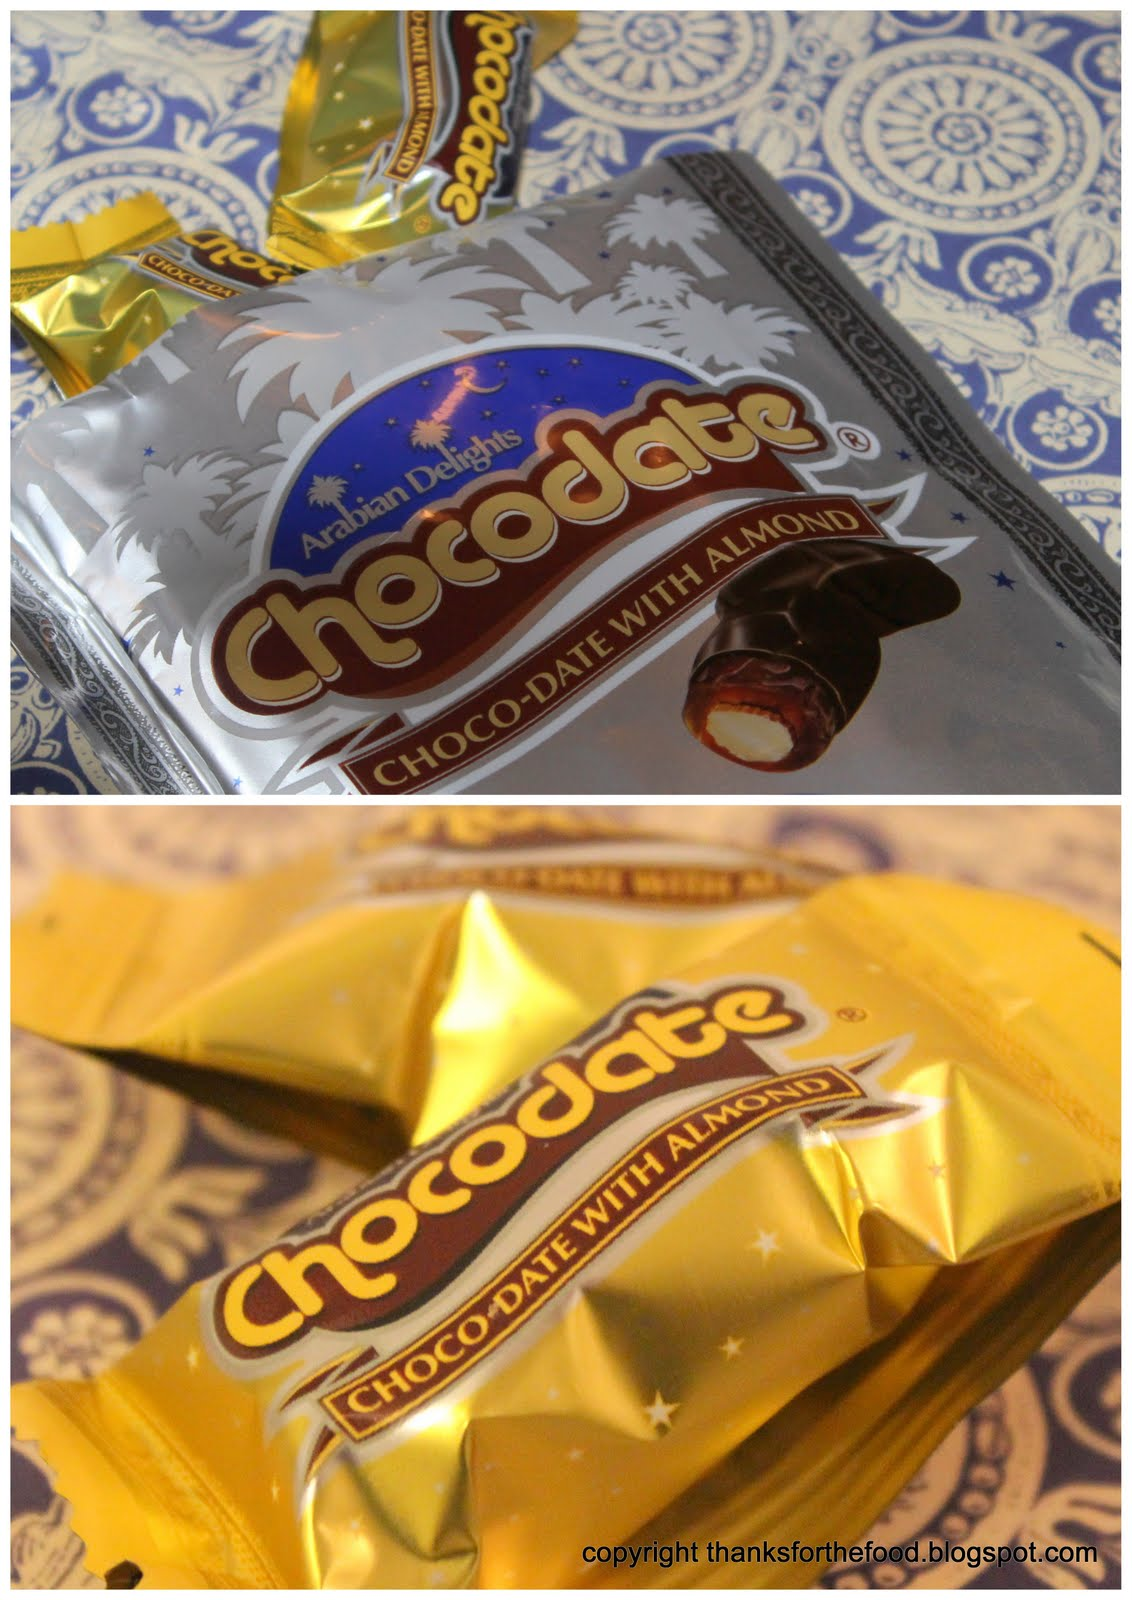 Straight from Dubai – Chocodate